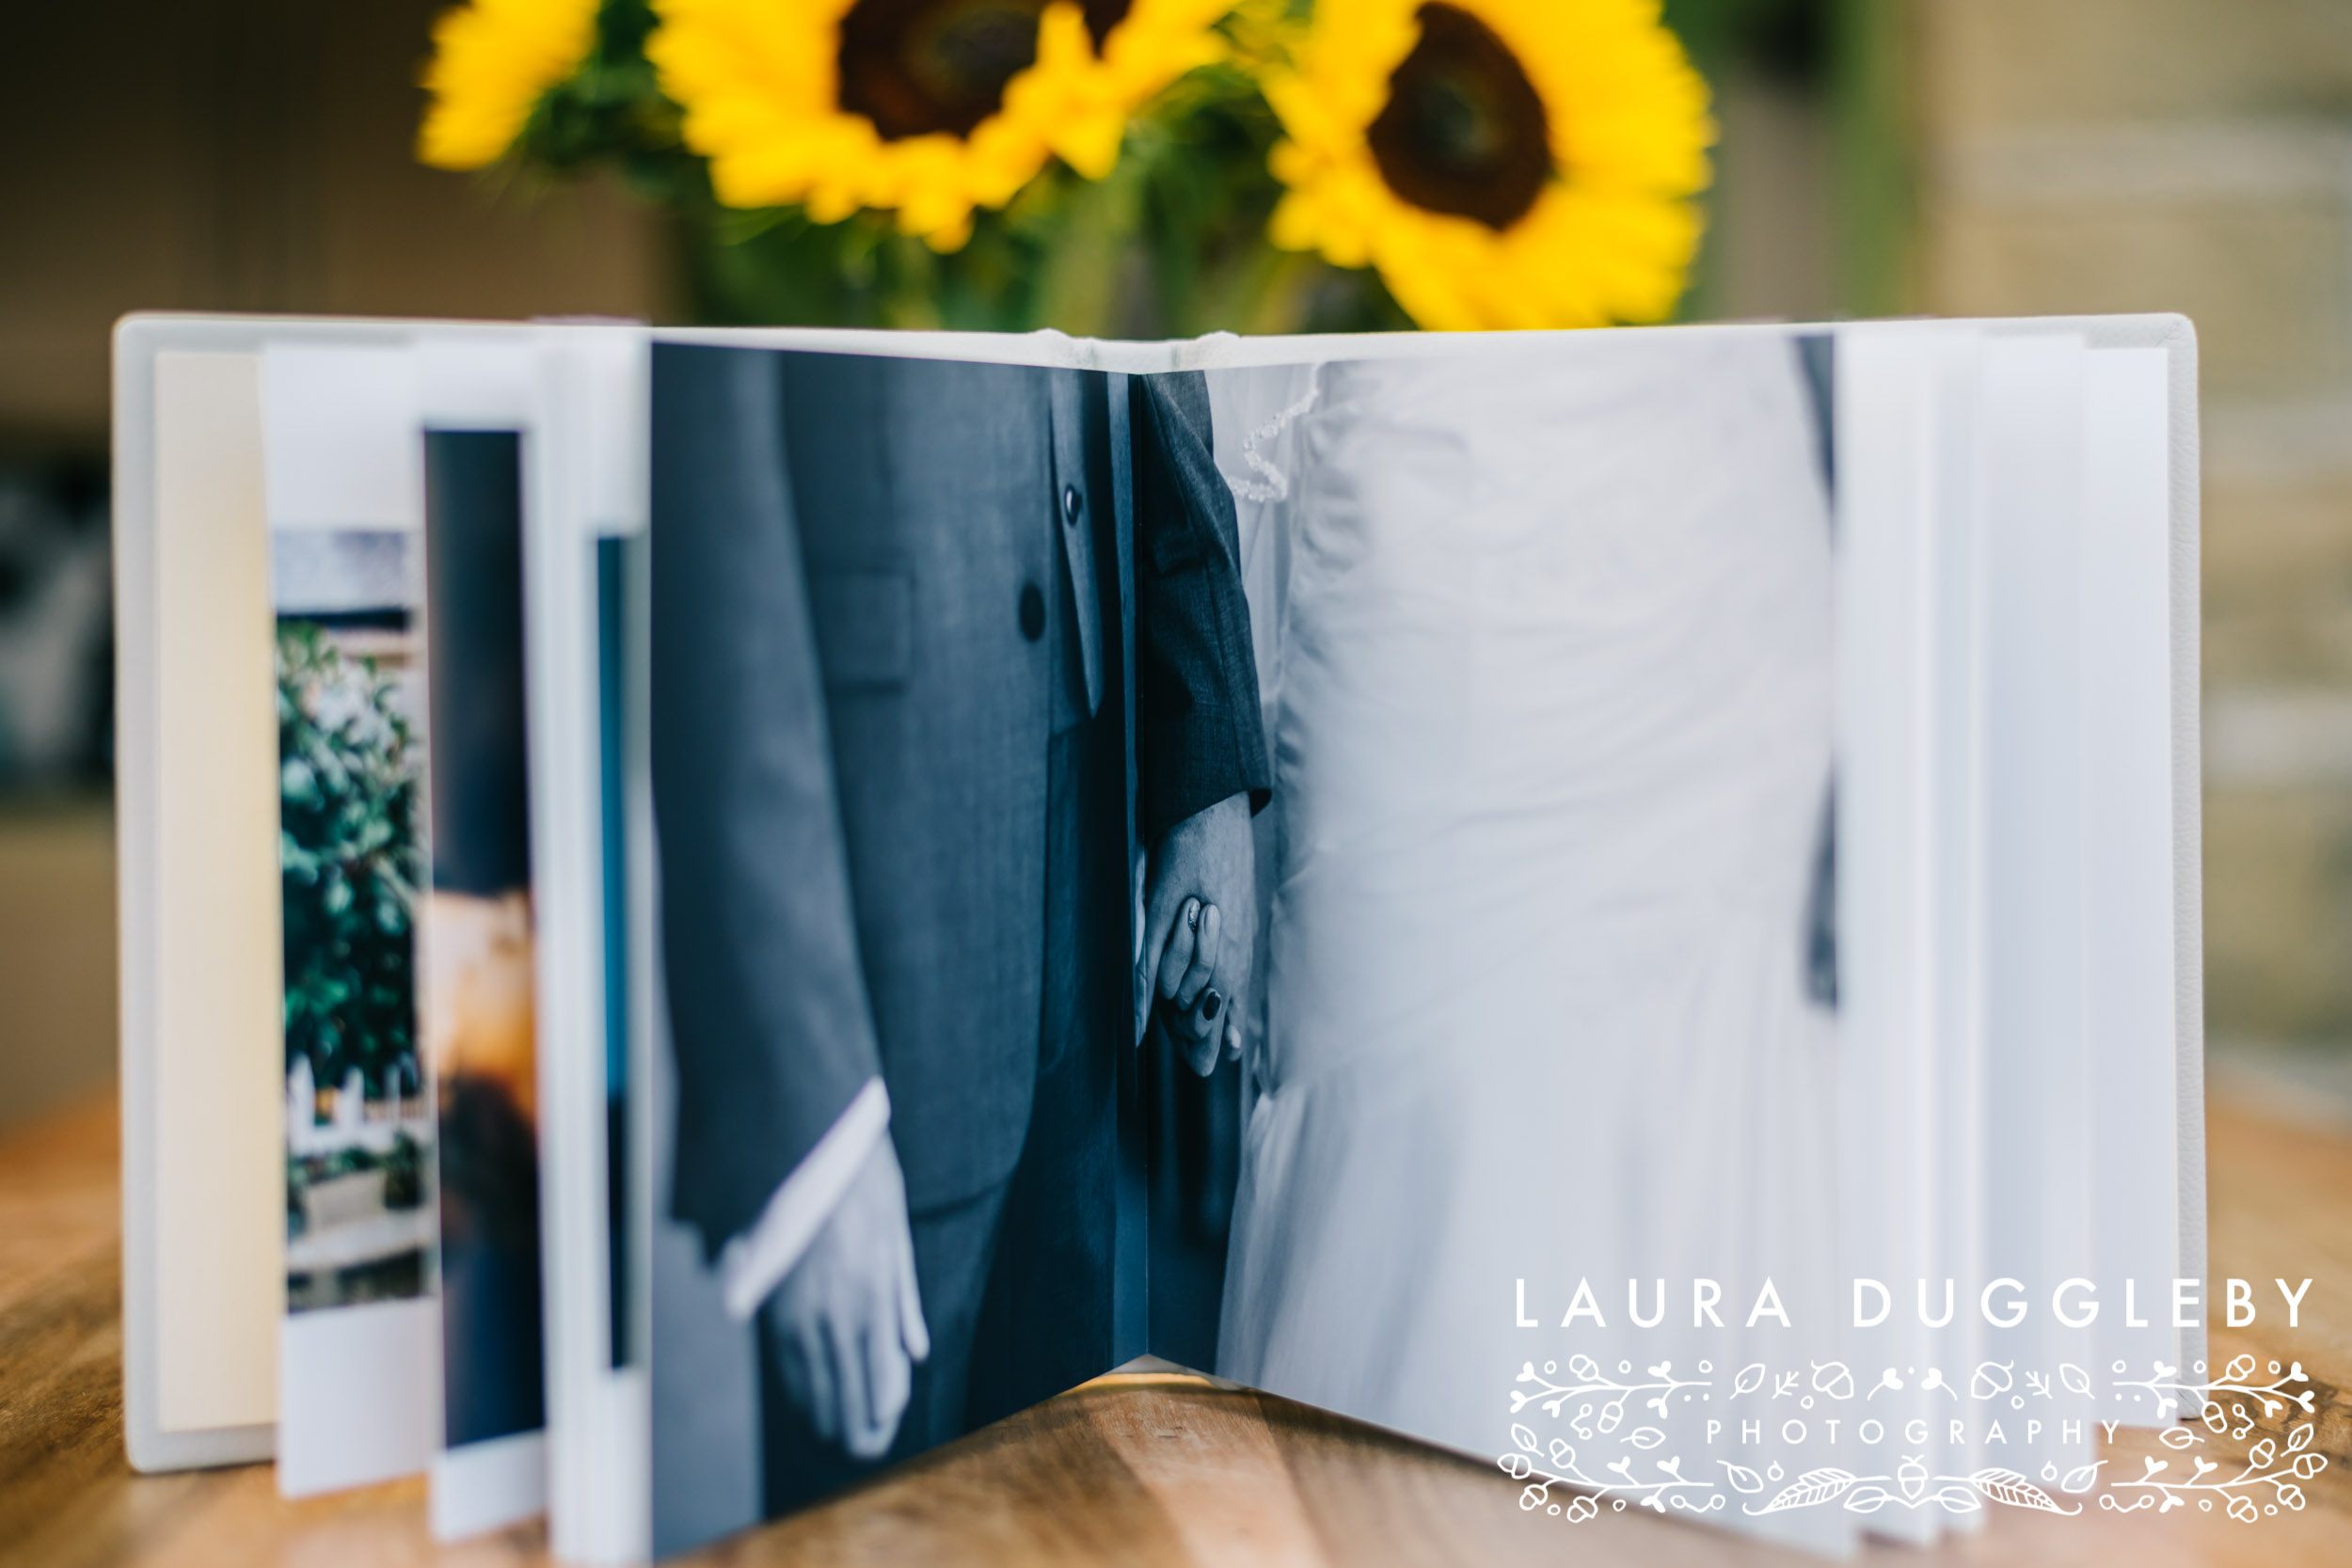 laura duggleby photography sample album-3.jpg